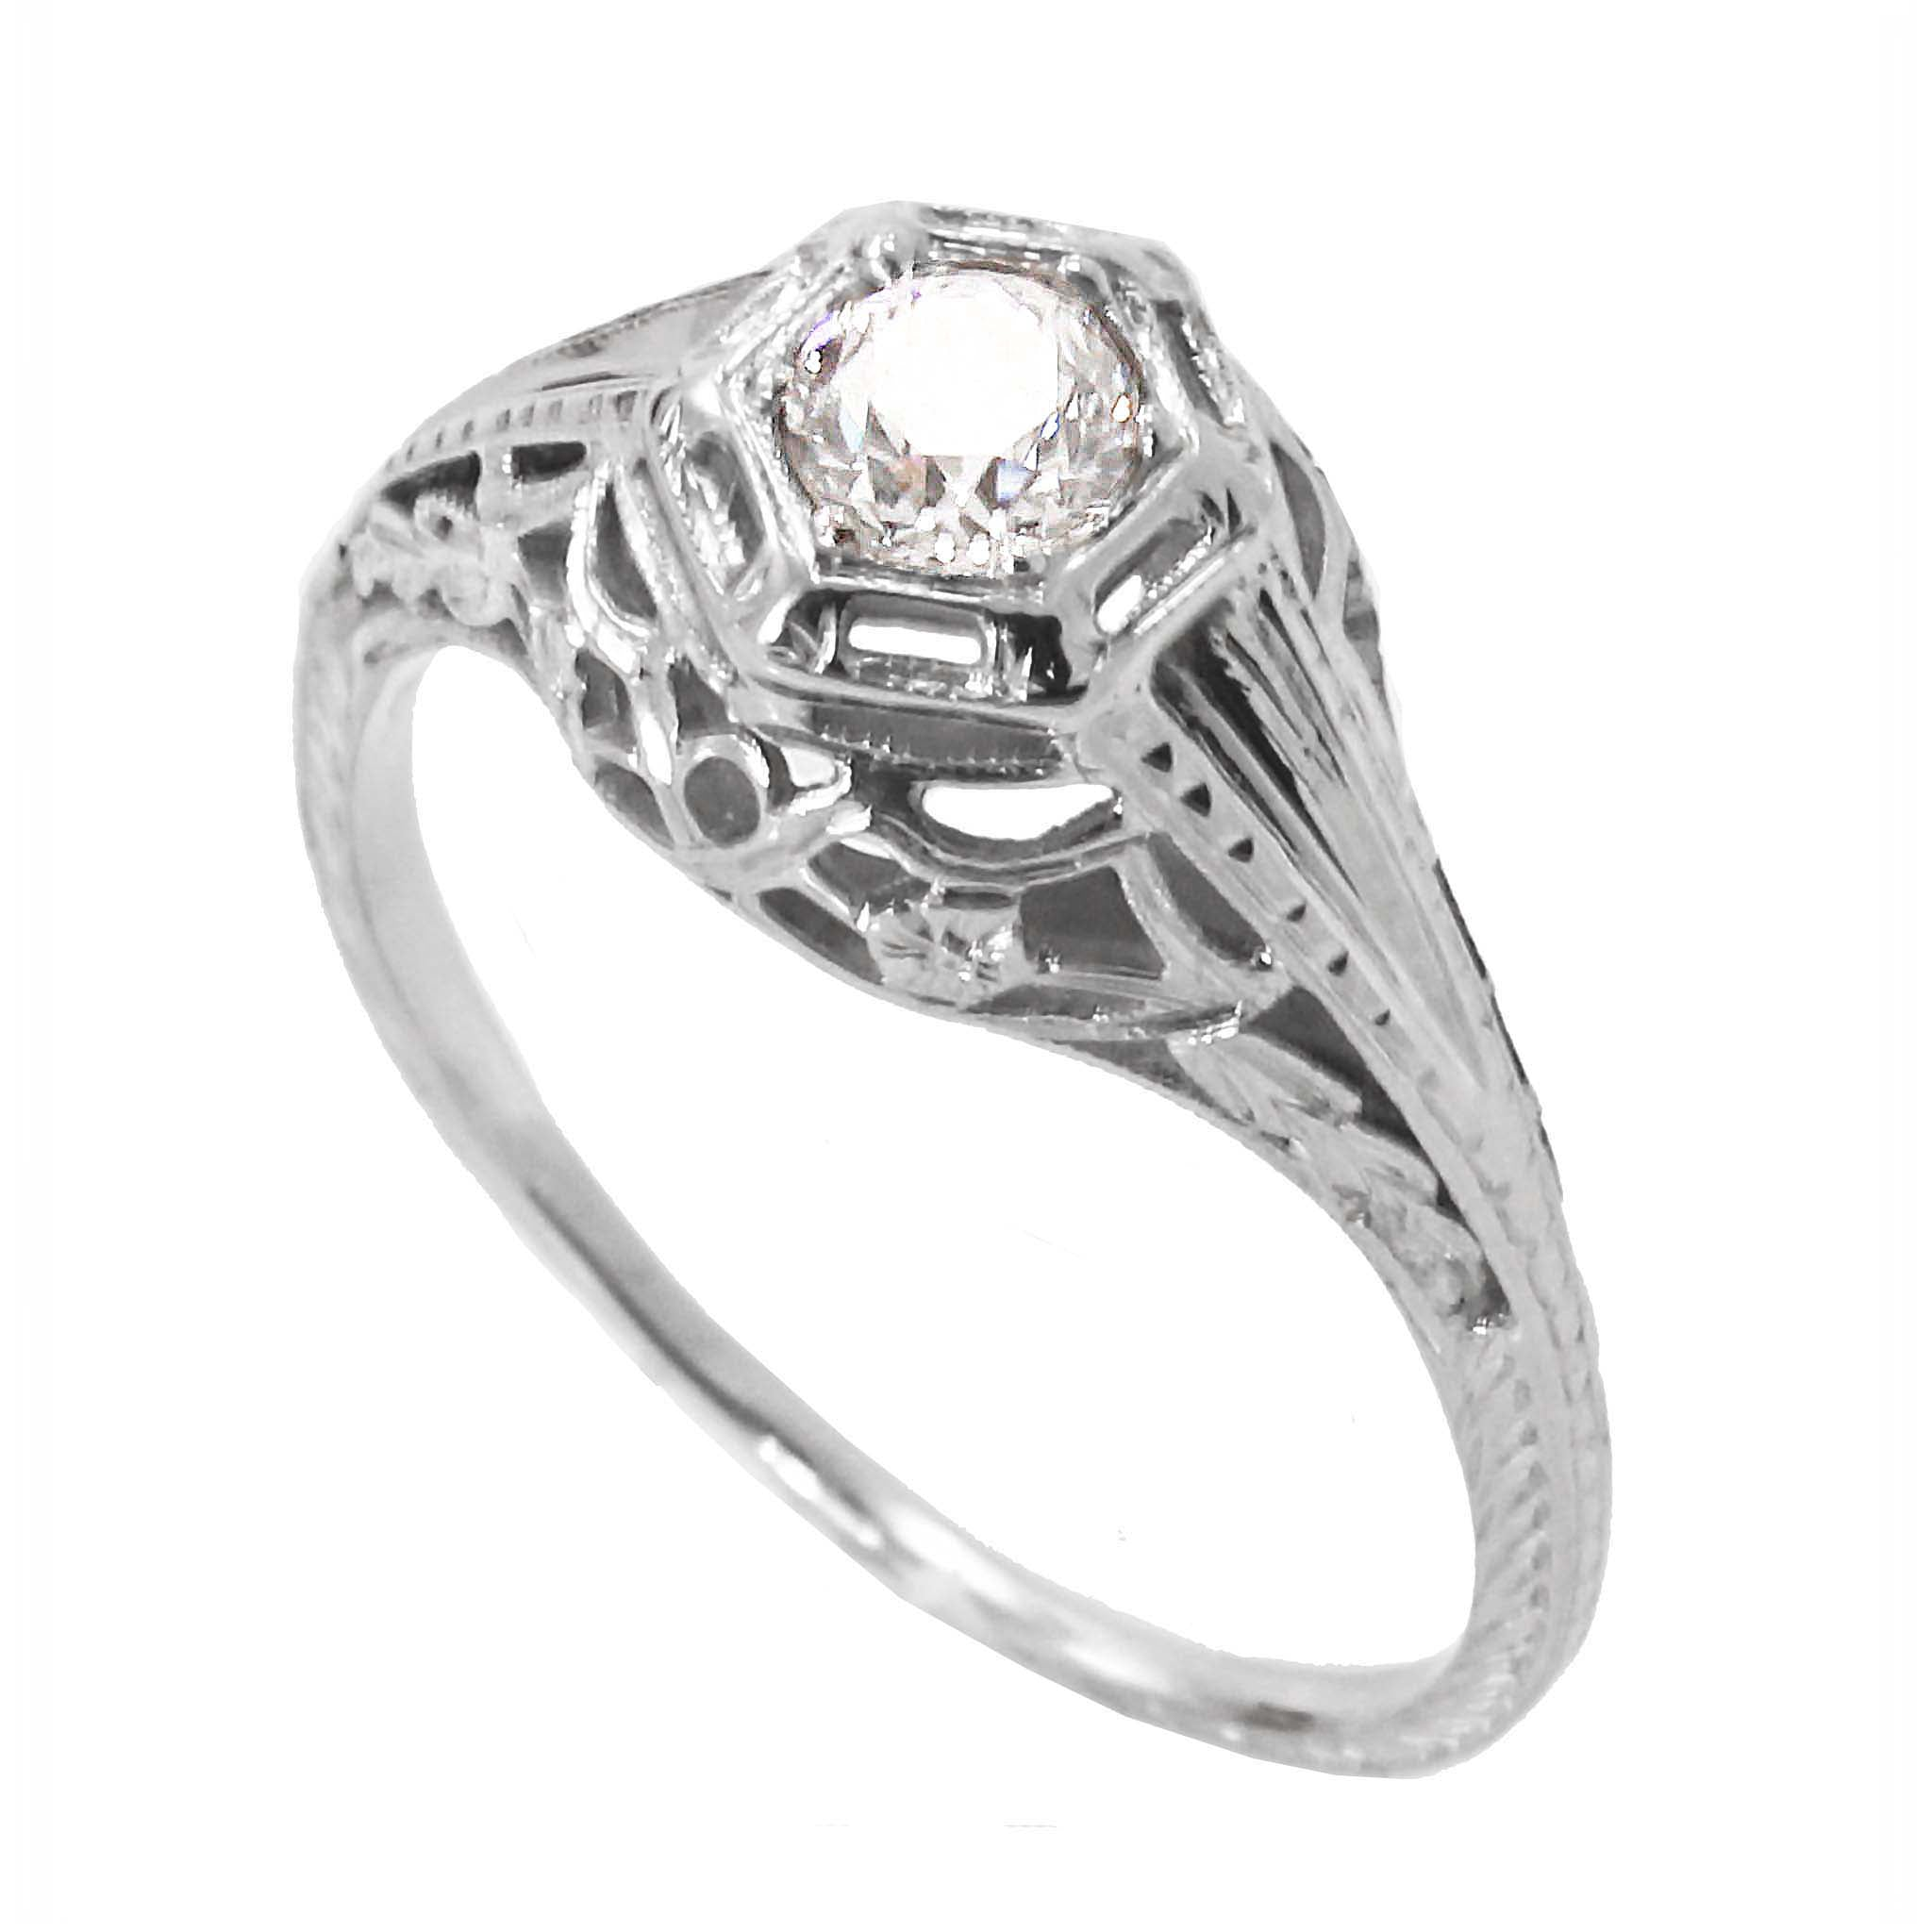 Art Deco Vintage .34 ct Diamond & 18k White Gold Filigree Ring Front